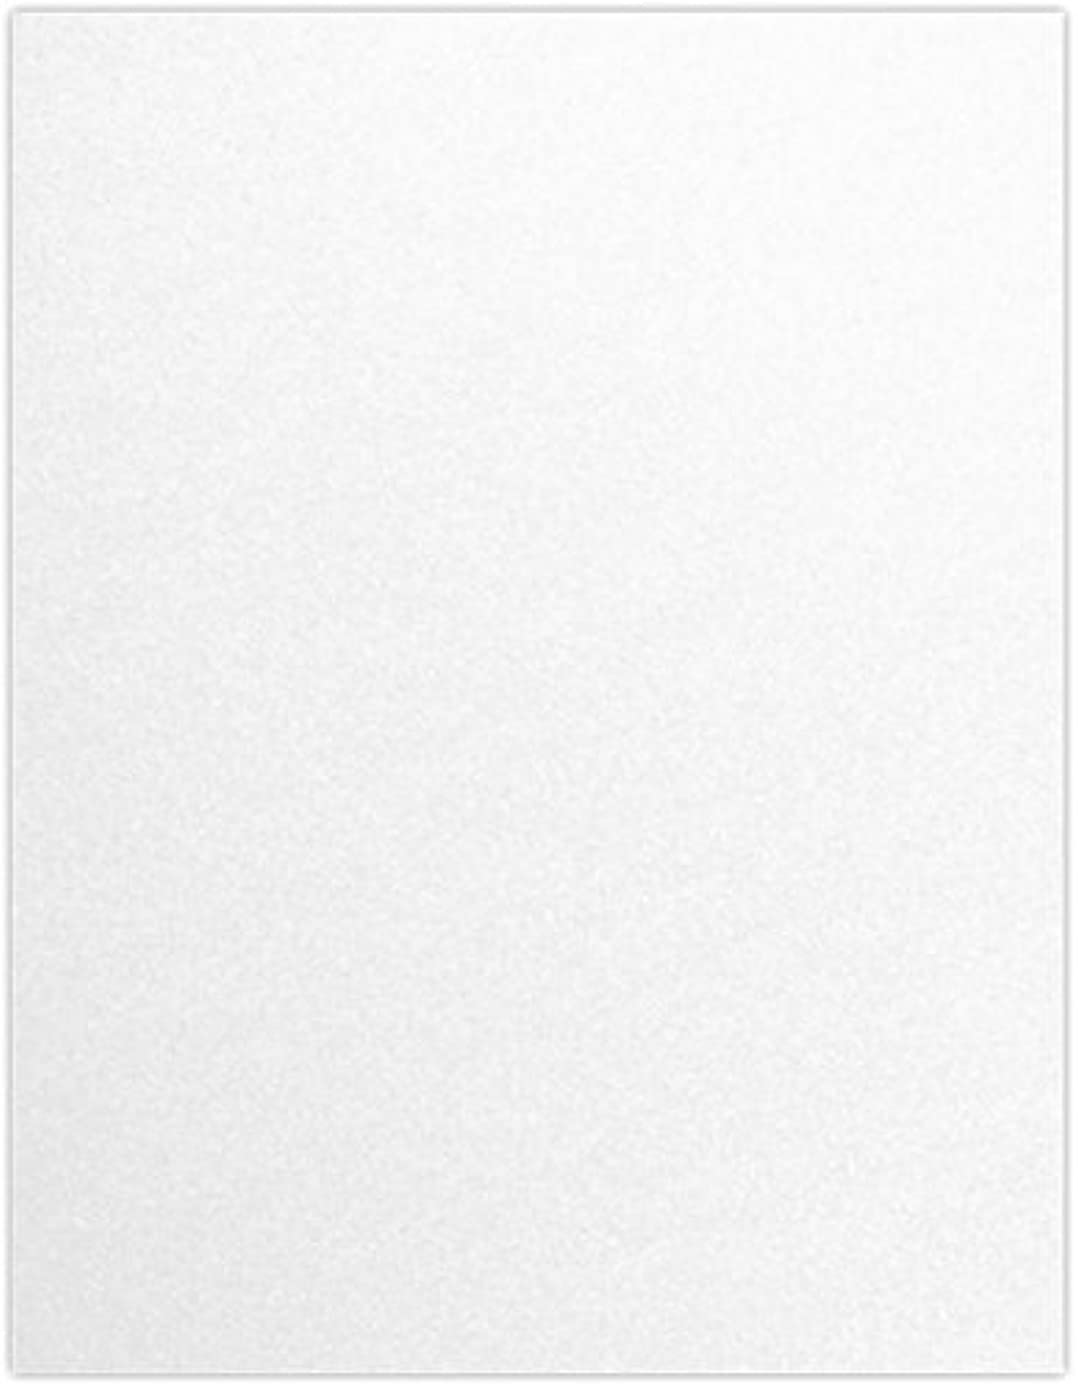 8 1/2 x 11 Cardstock - Crystal Metallic (50 Qty) | Perfect for Printing, Copying, Crafting, various Business needs and so much more! | 81211-C-30-50 wfz7424125